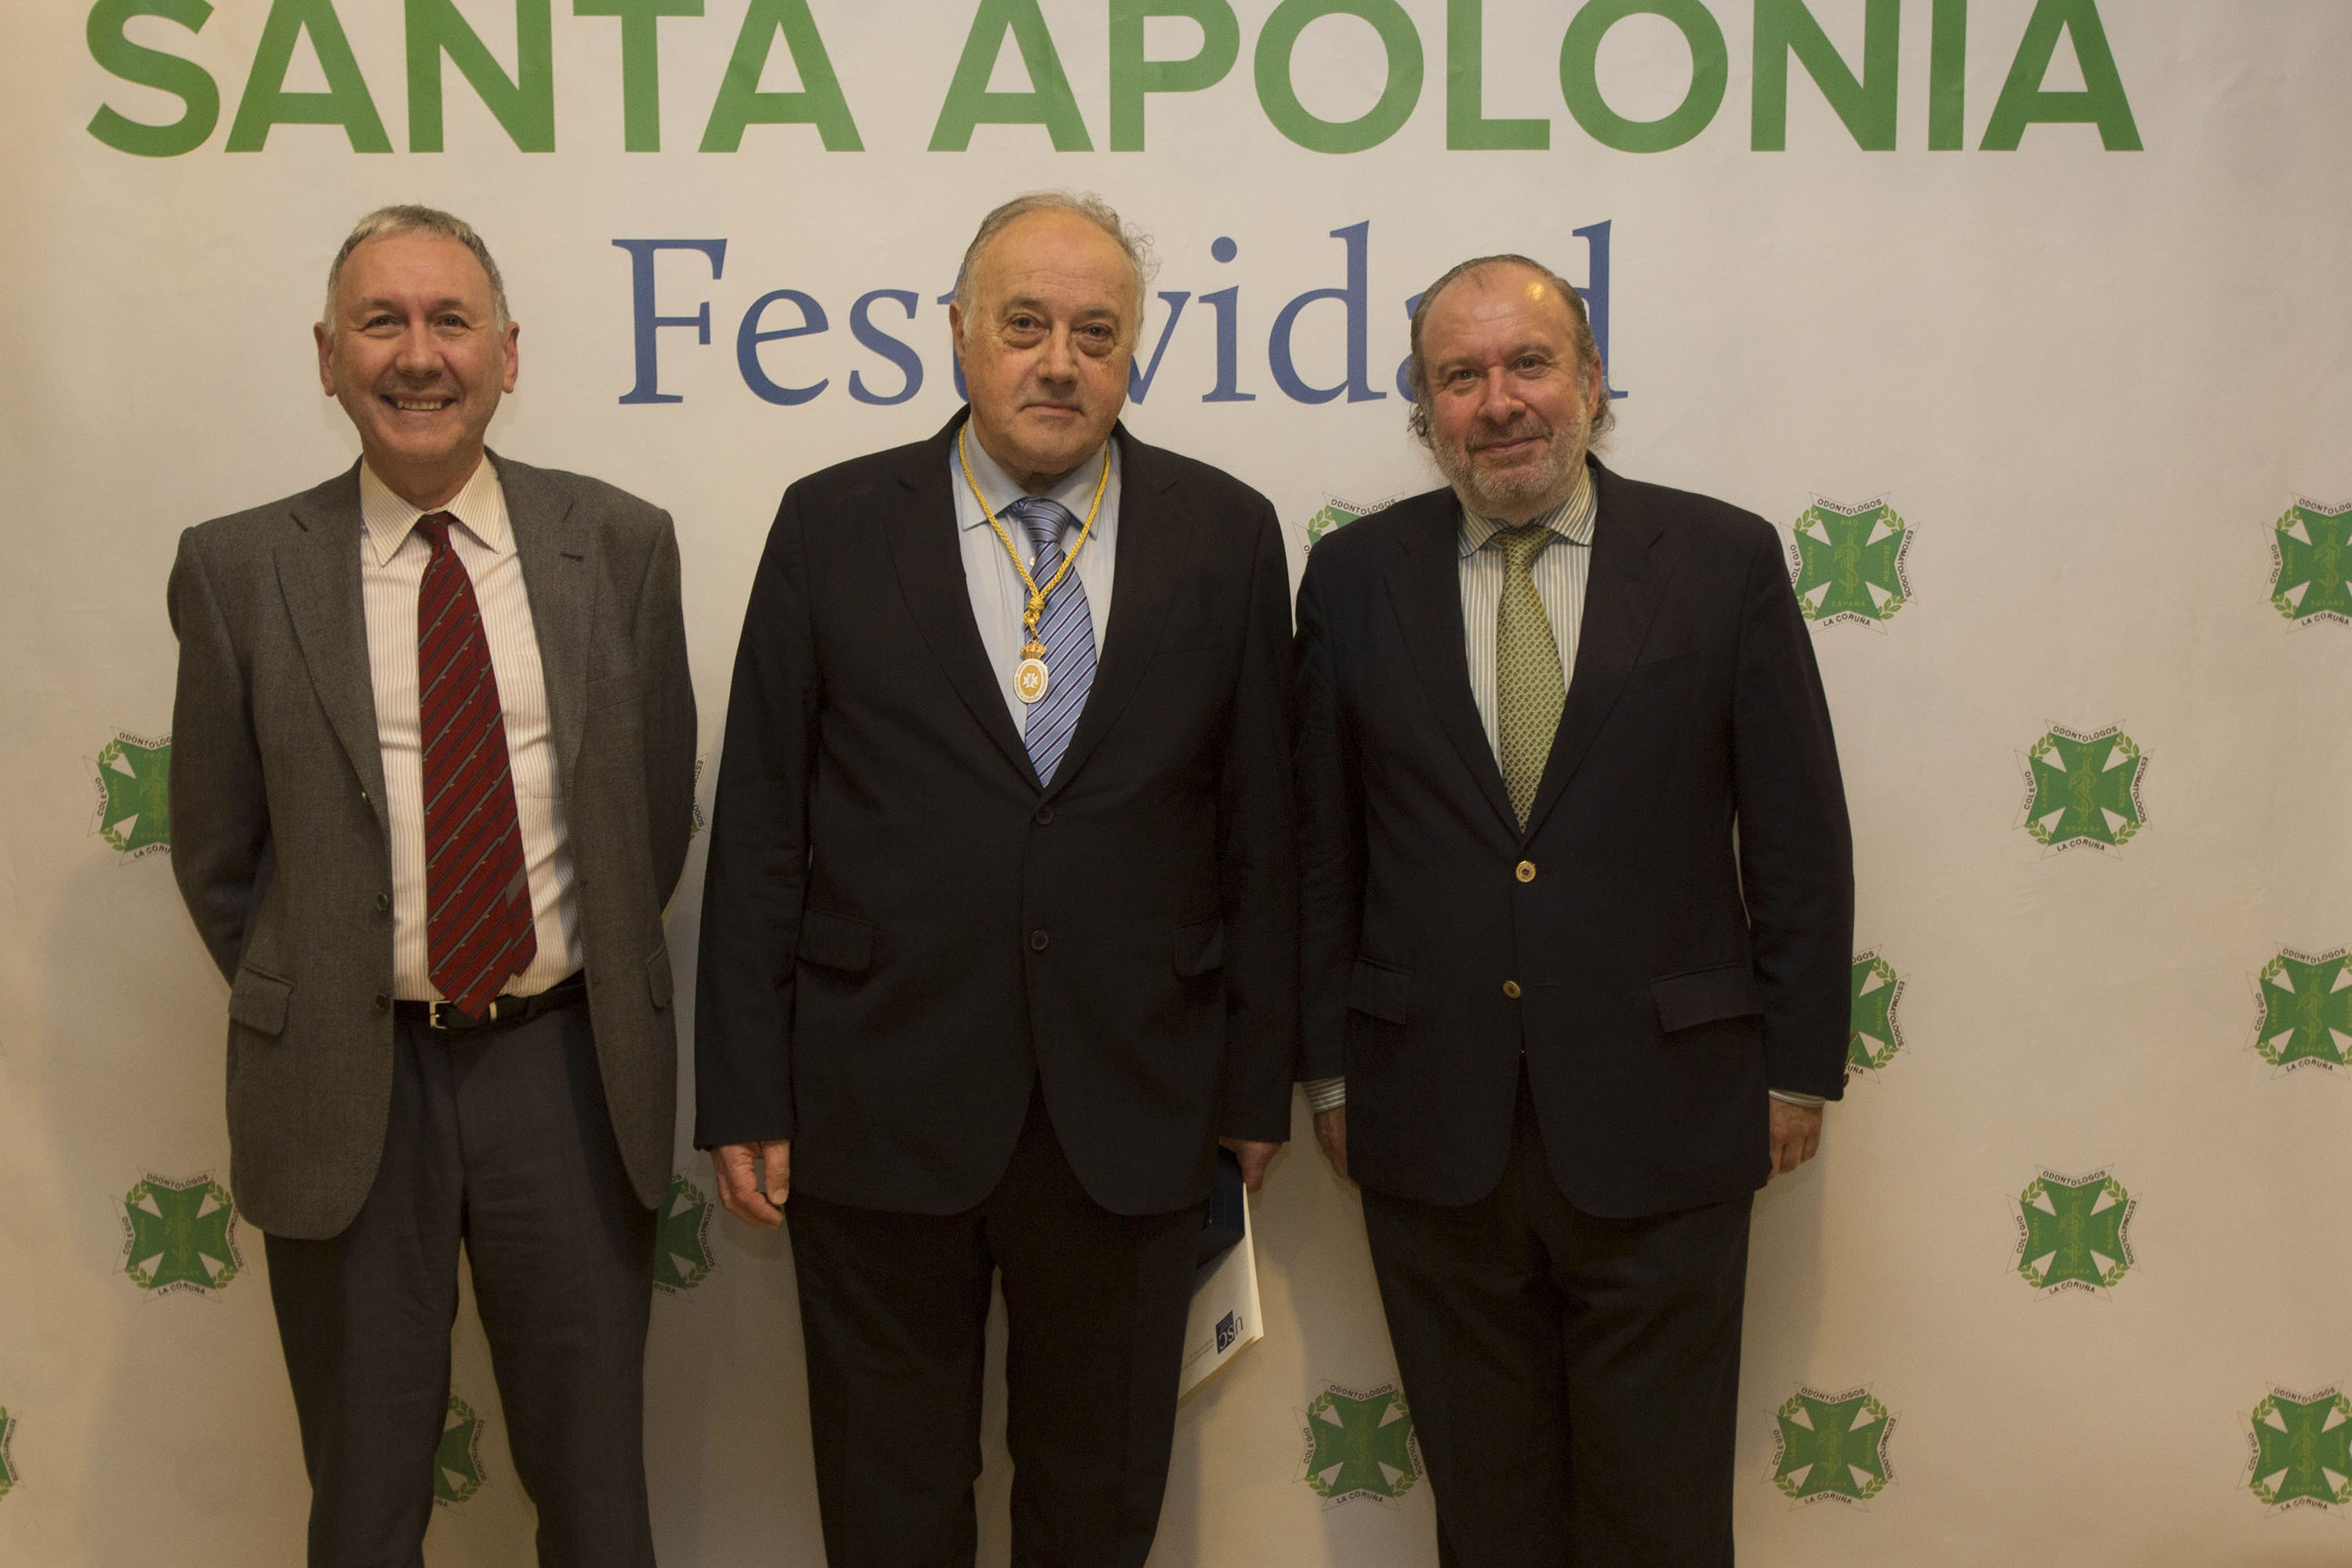 ICOEC_SantaApolonia2019_photocall-_0002__MG_0509